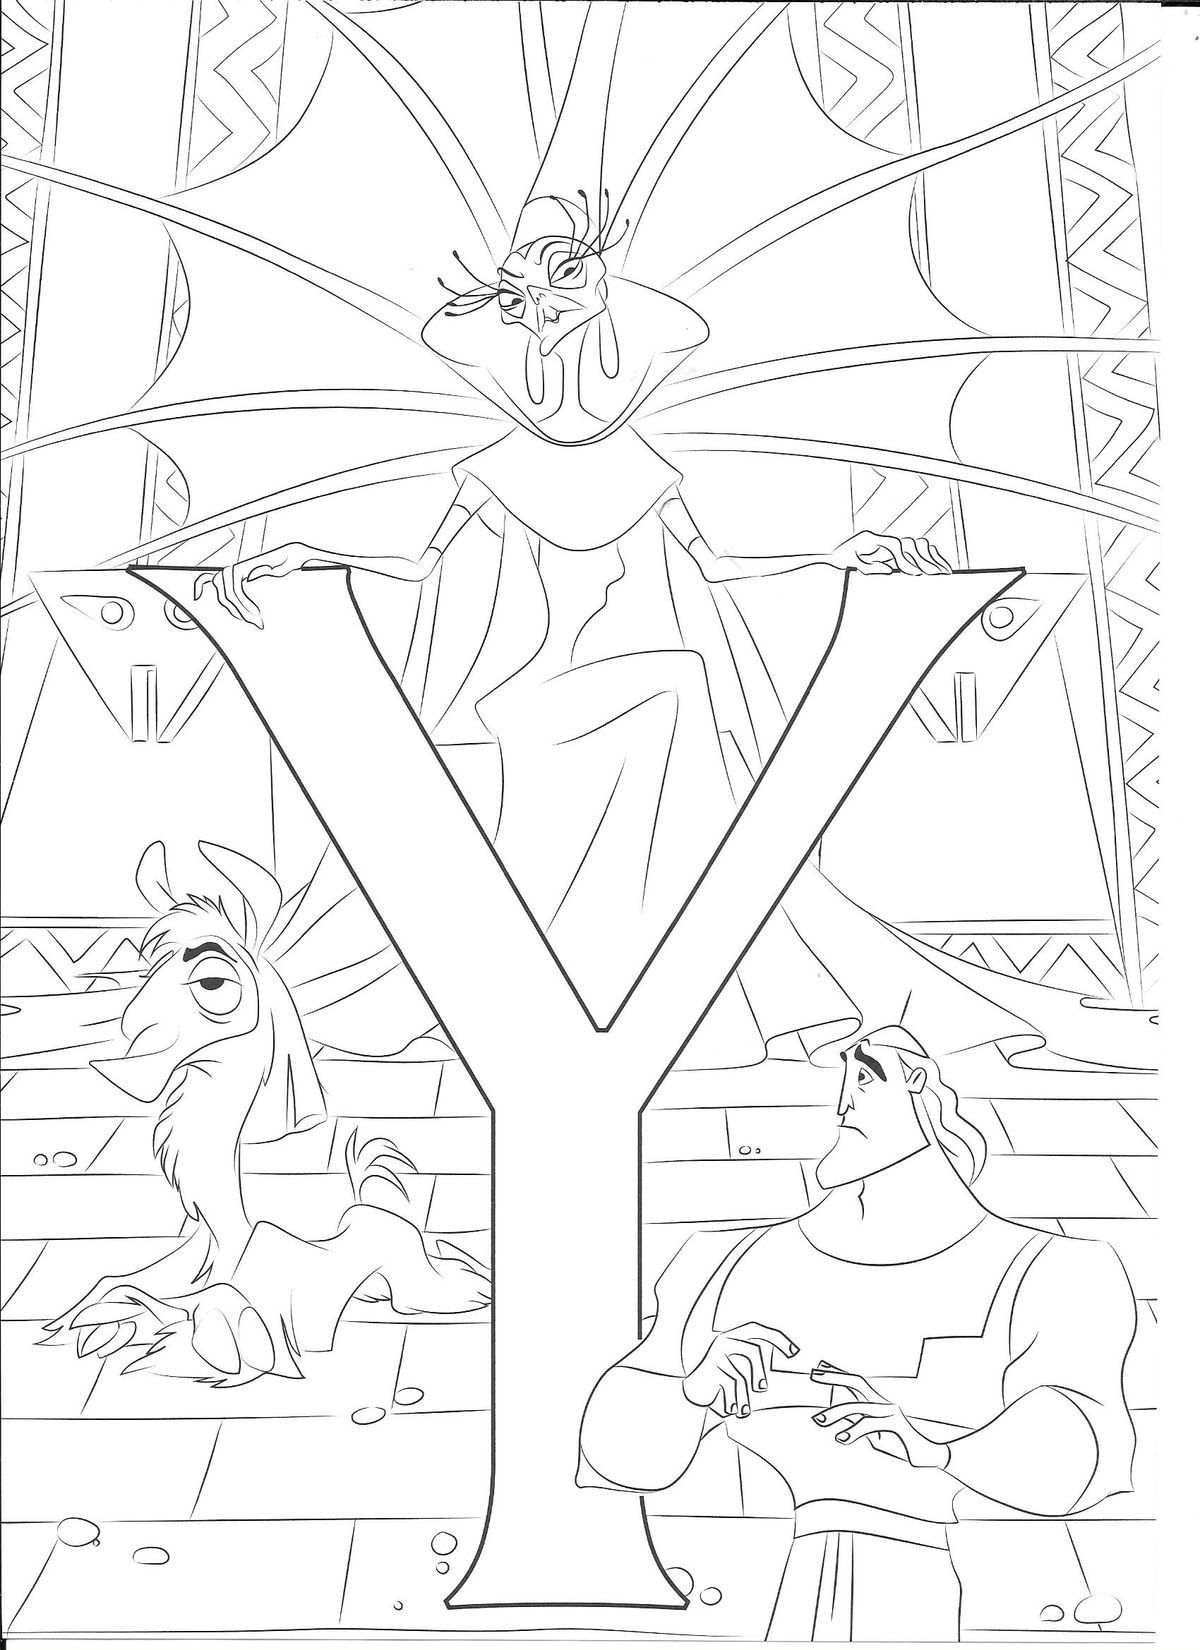 Pin By Angie Morris On Alphabet Coloring Sheets Disney Coloring Sheets Abc Coloring Pages Disney Coloring Pages [ 1650 x 1200 Pixel ]